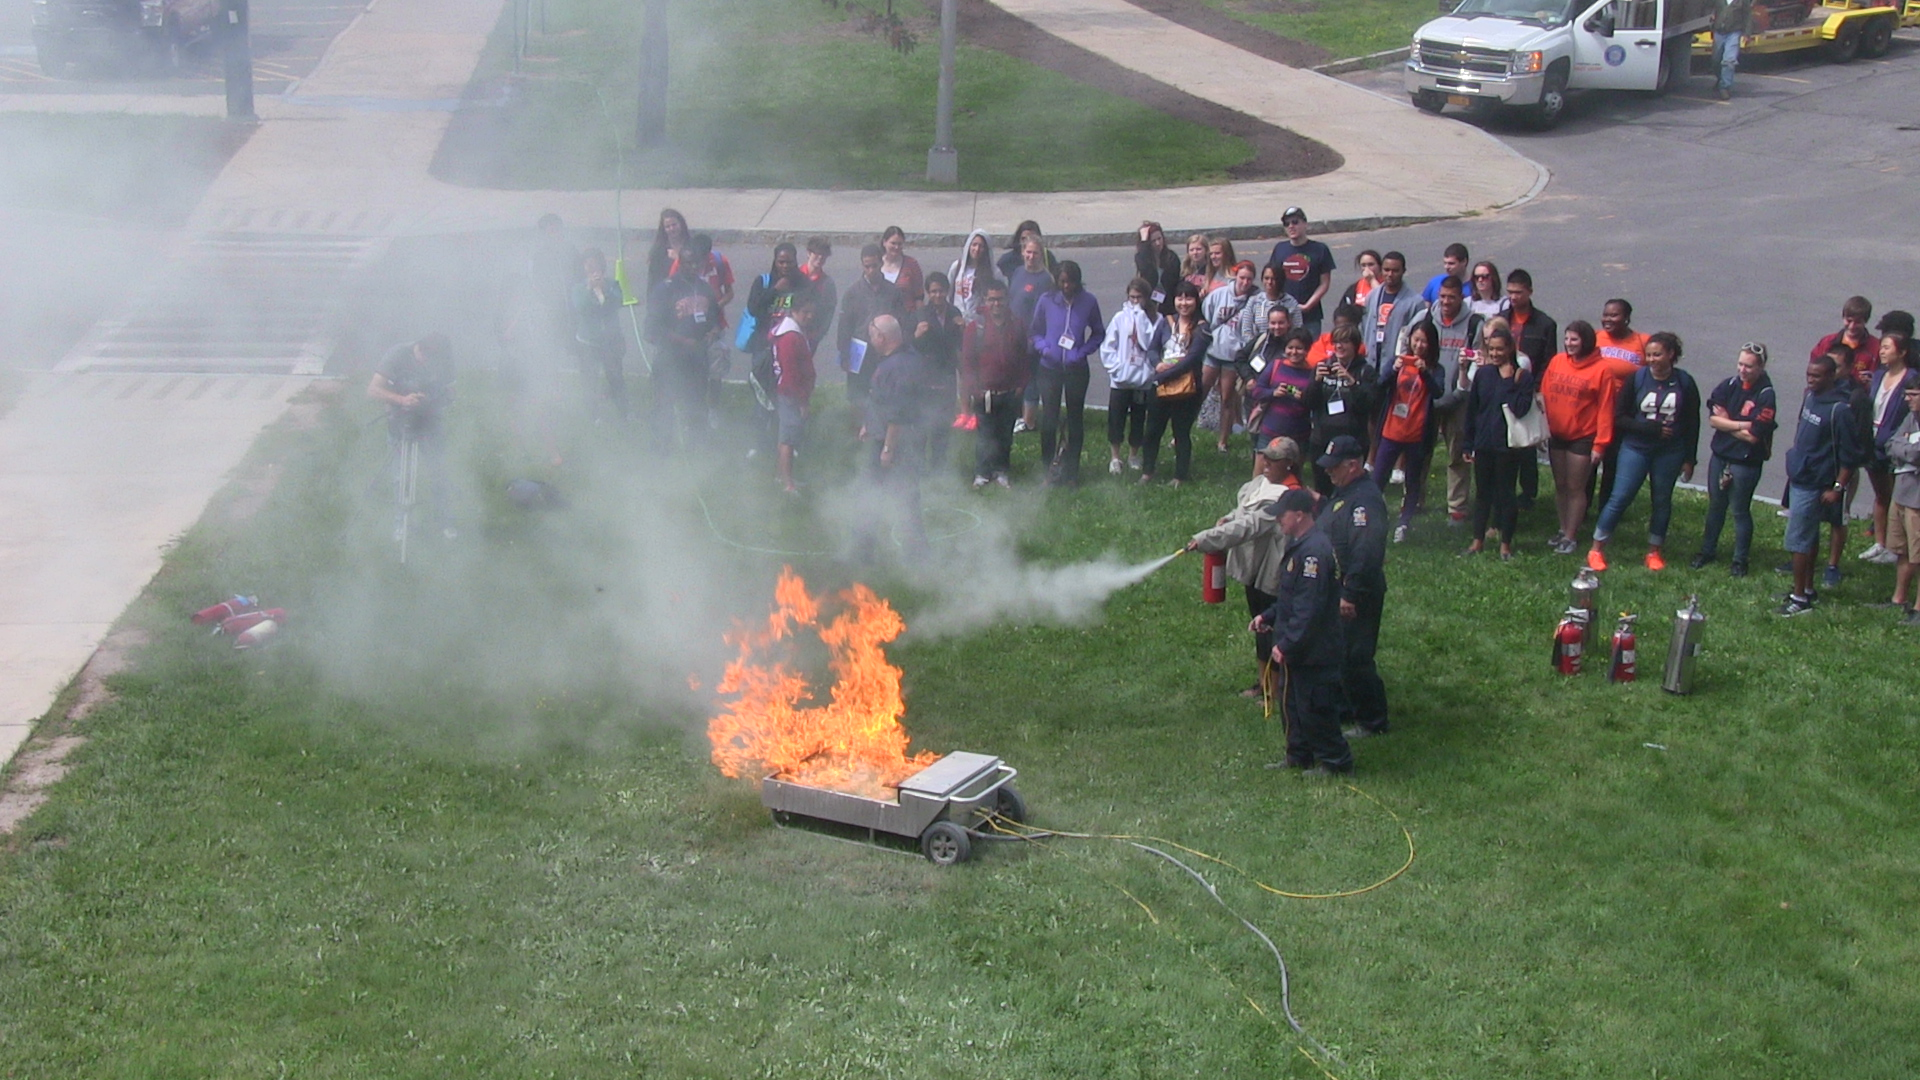 As part of fire safety training, residence hall staff learned how to use a fire extinguisher.  It's all done under the watchful eye of representatives from Syracuse University, the city of Syracuse, and New York State.